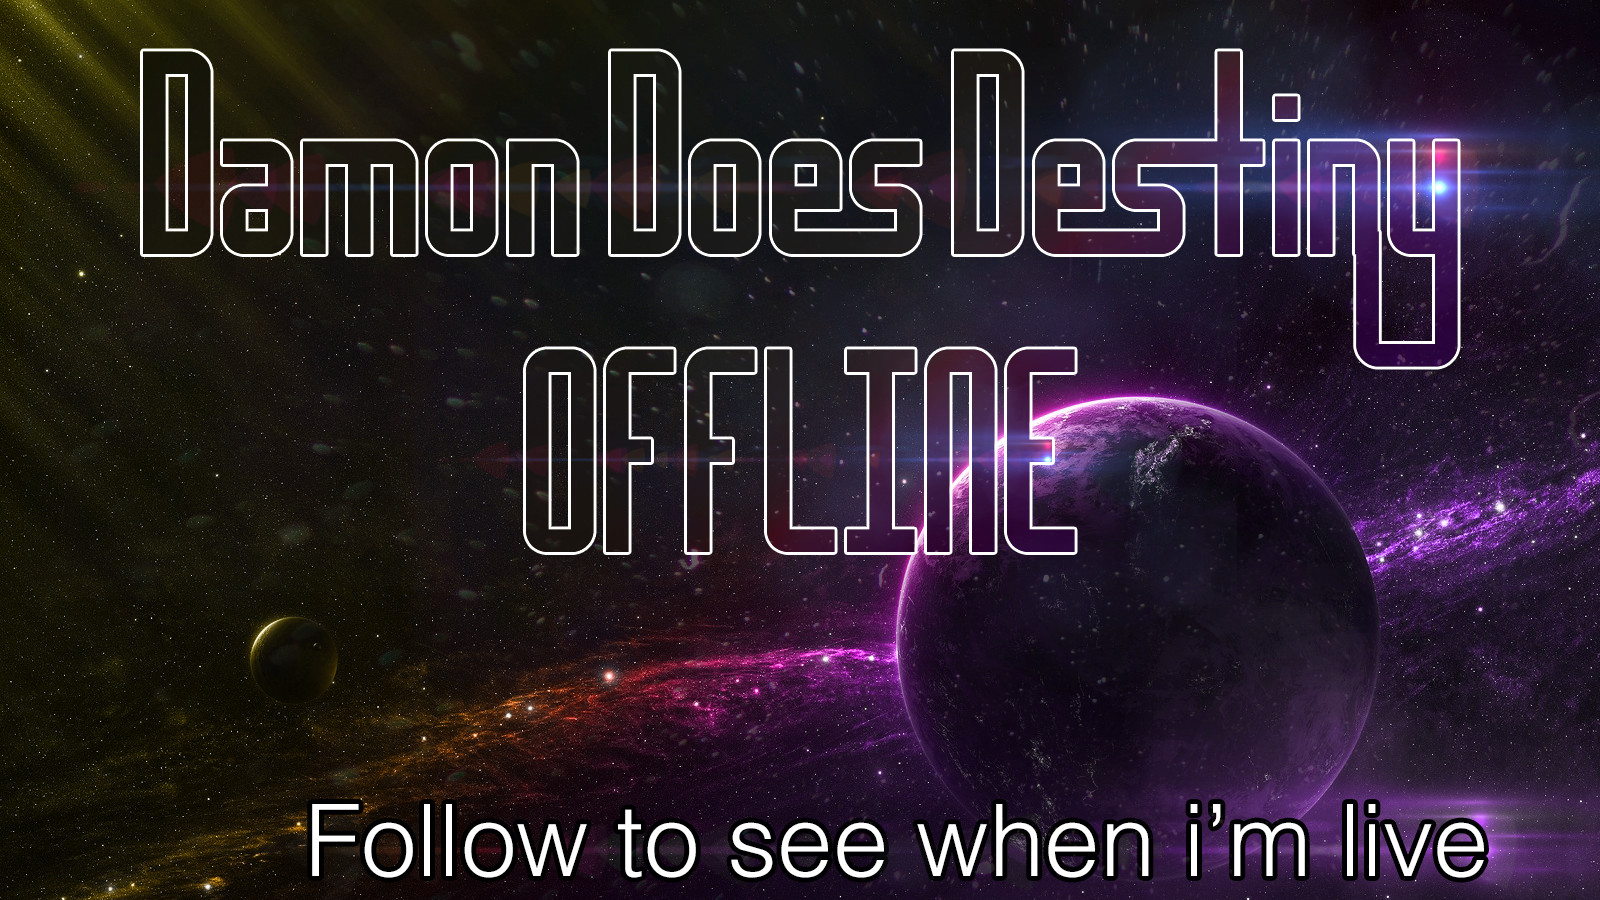 Joe cove offline banner damon